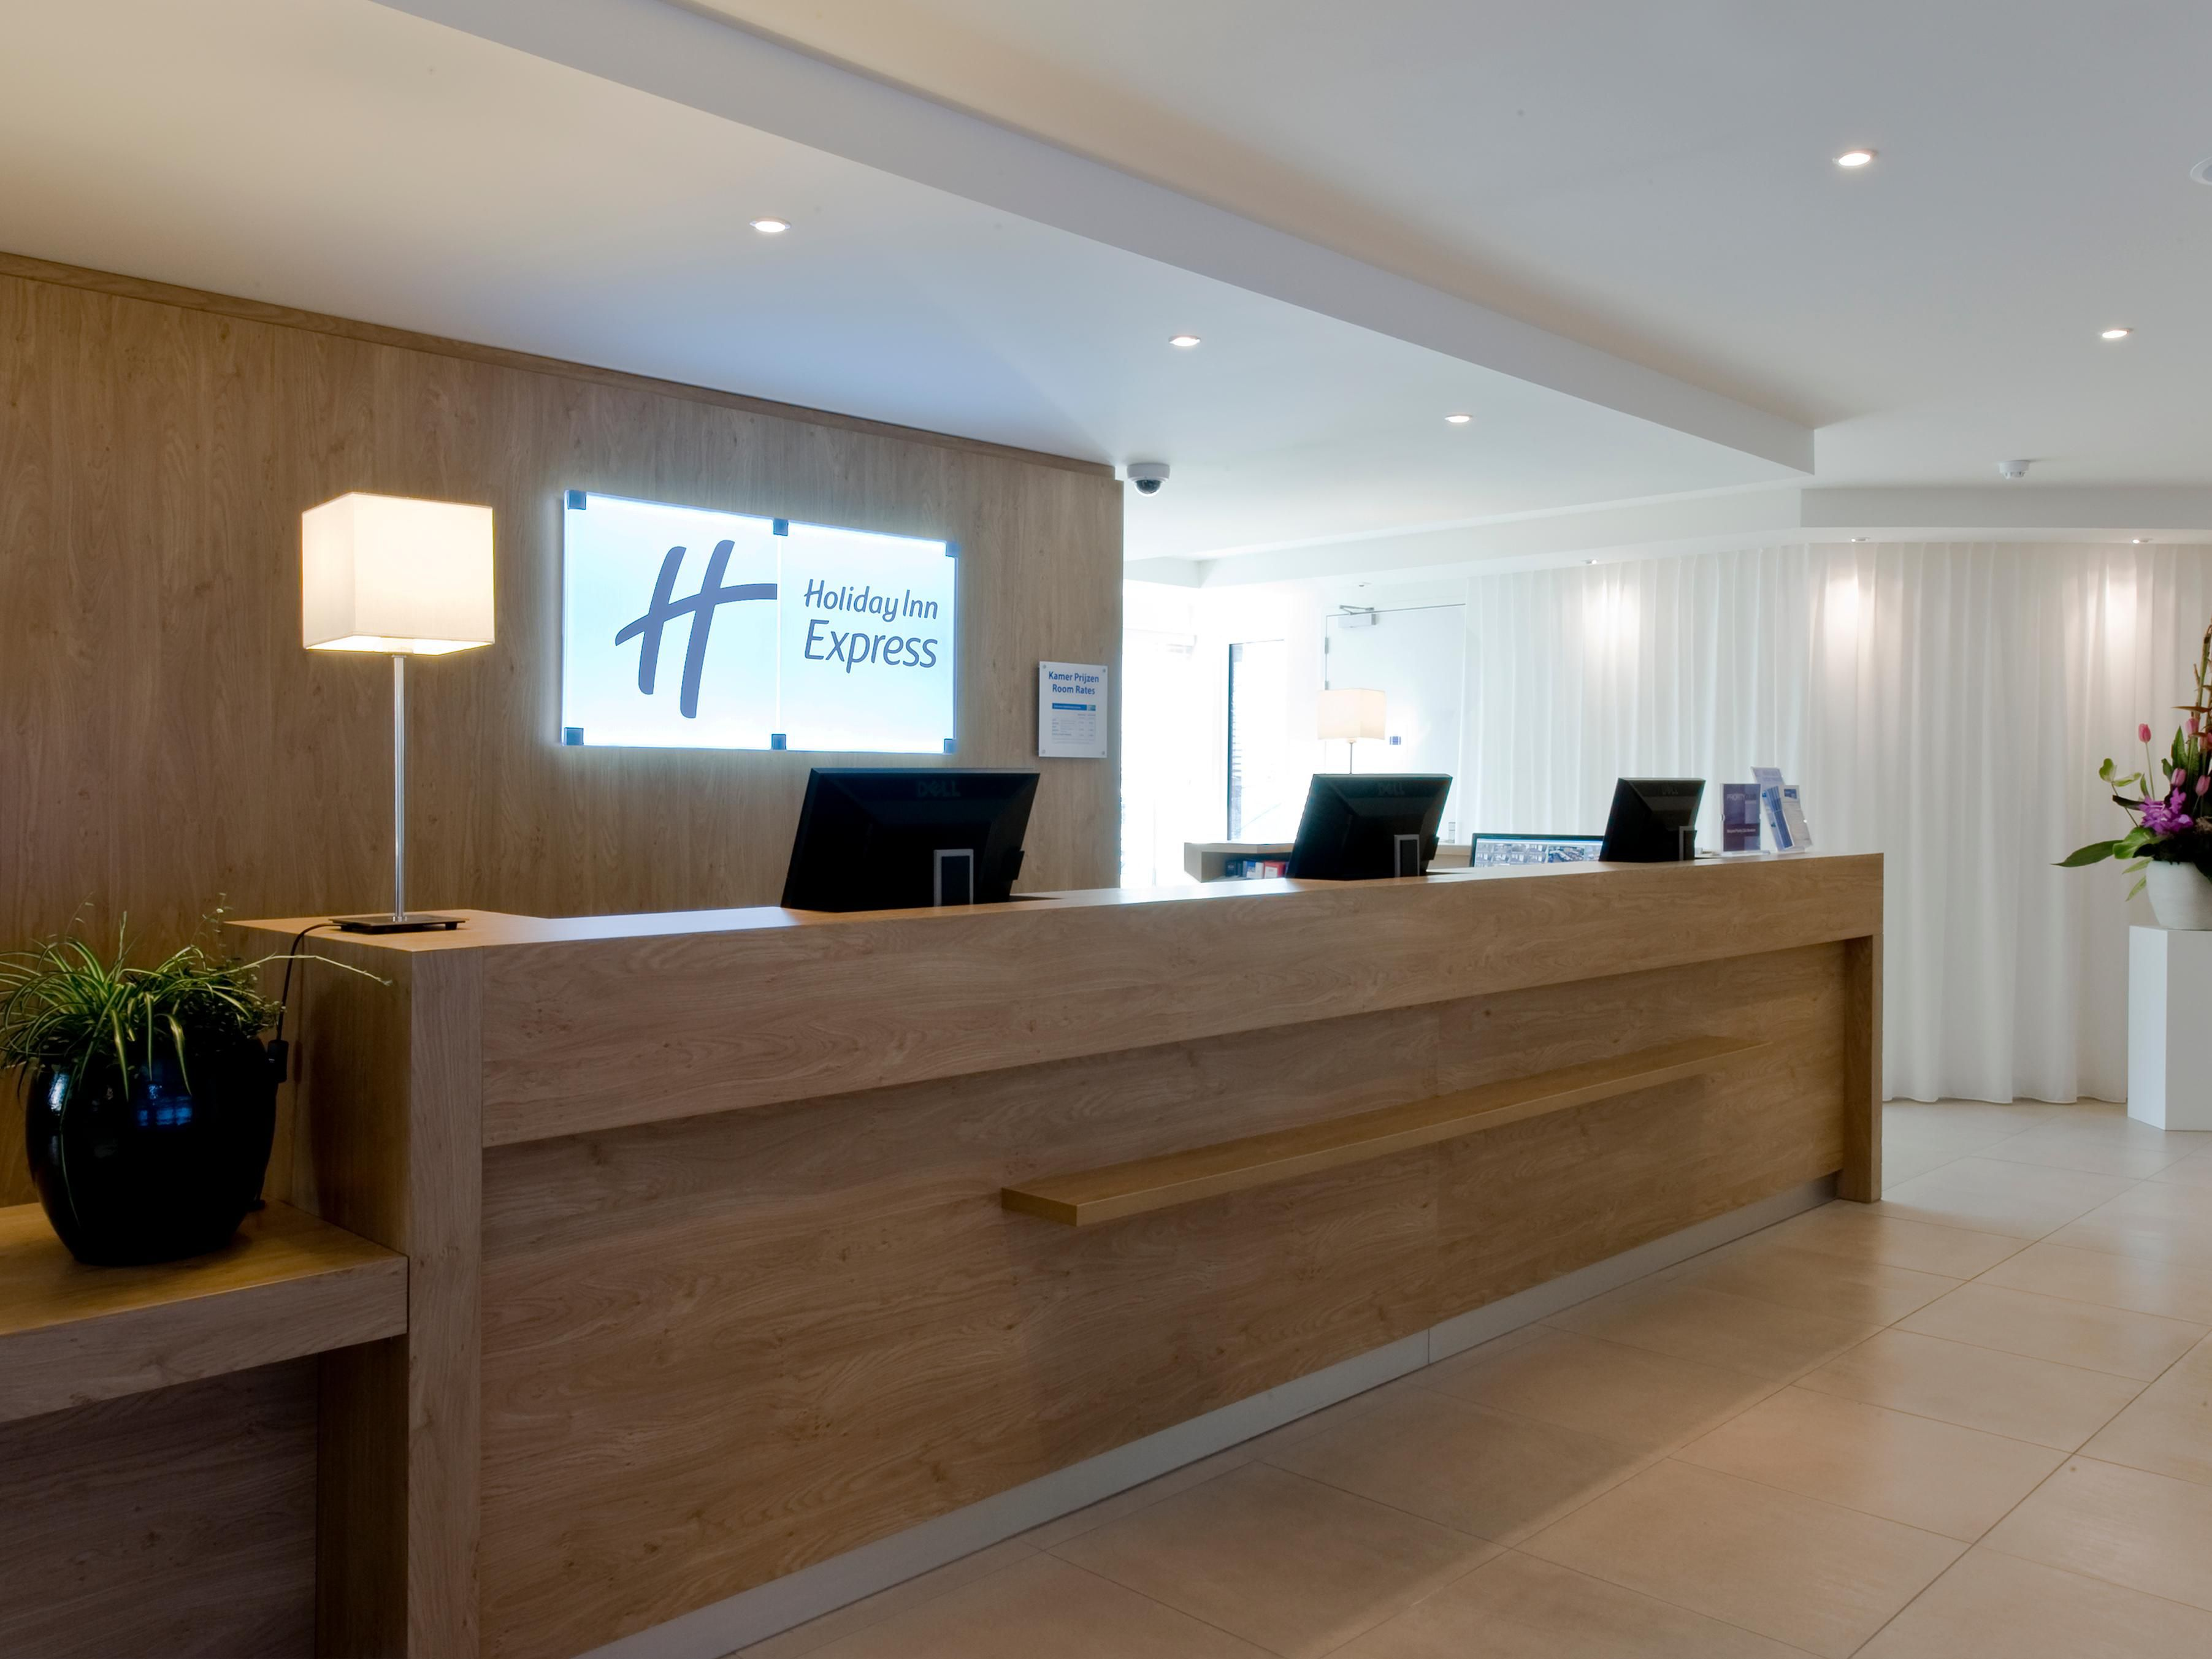 Our colleagues welcome you in our Amsterdam City Center hotel